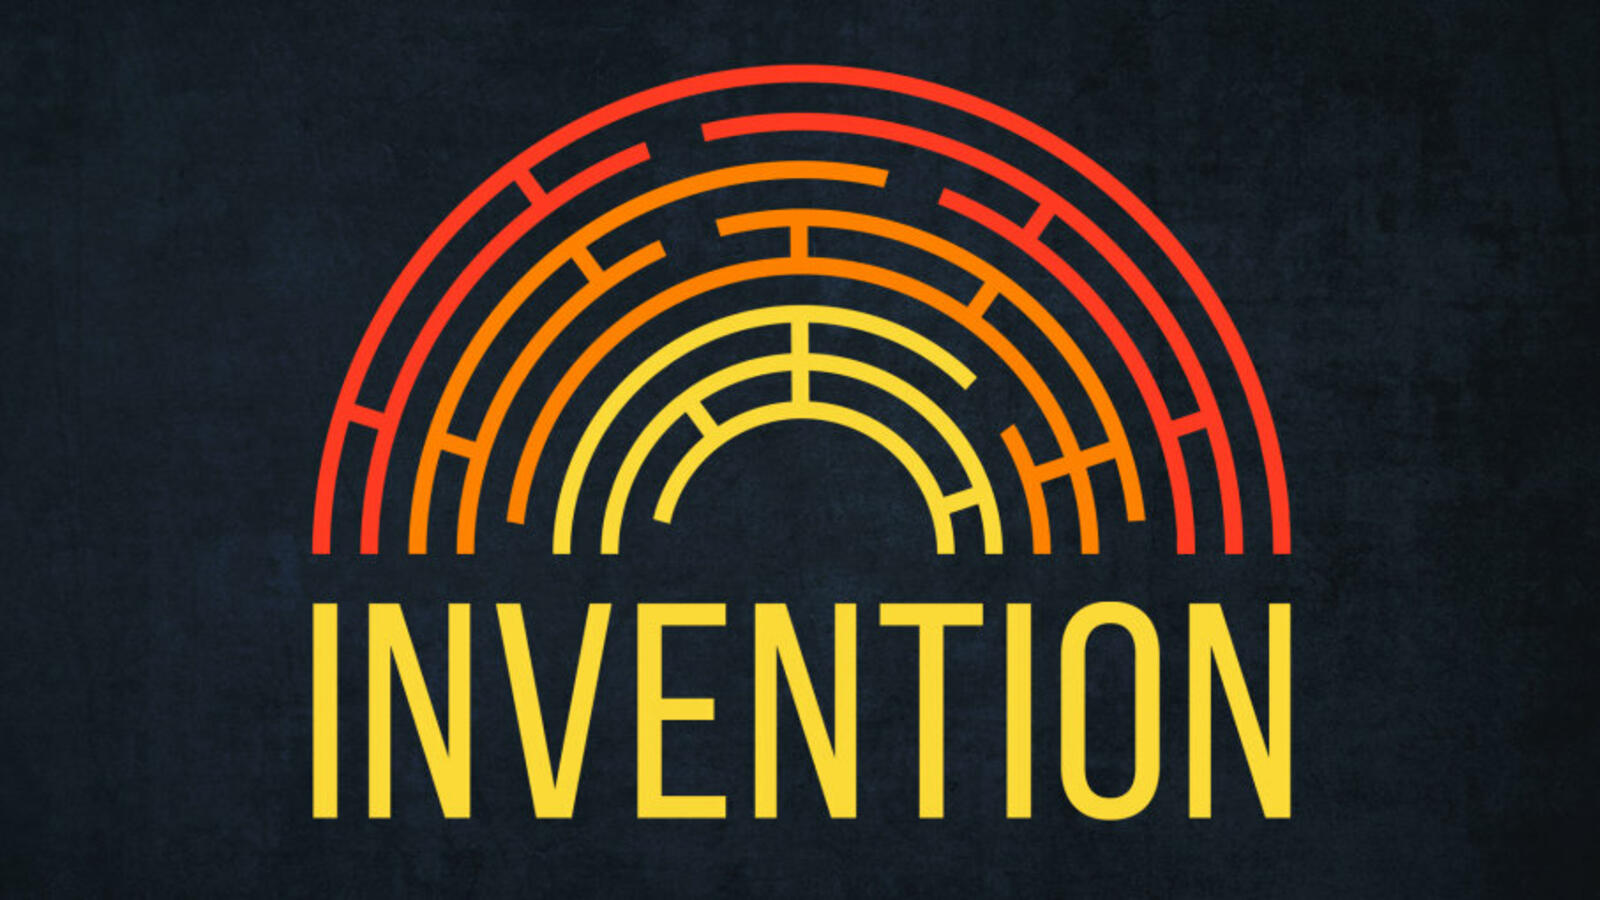 About Invention